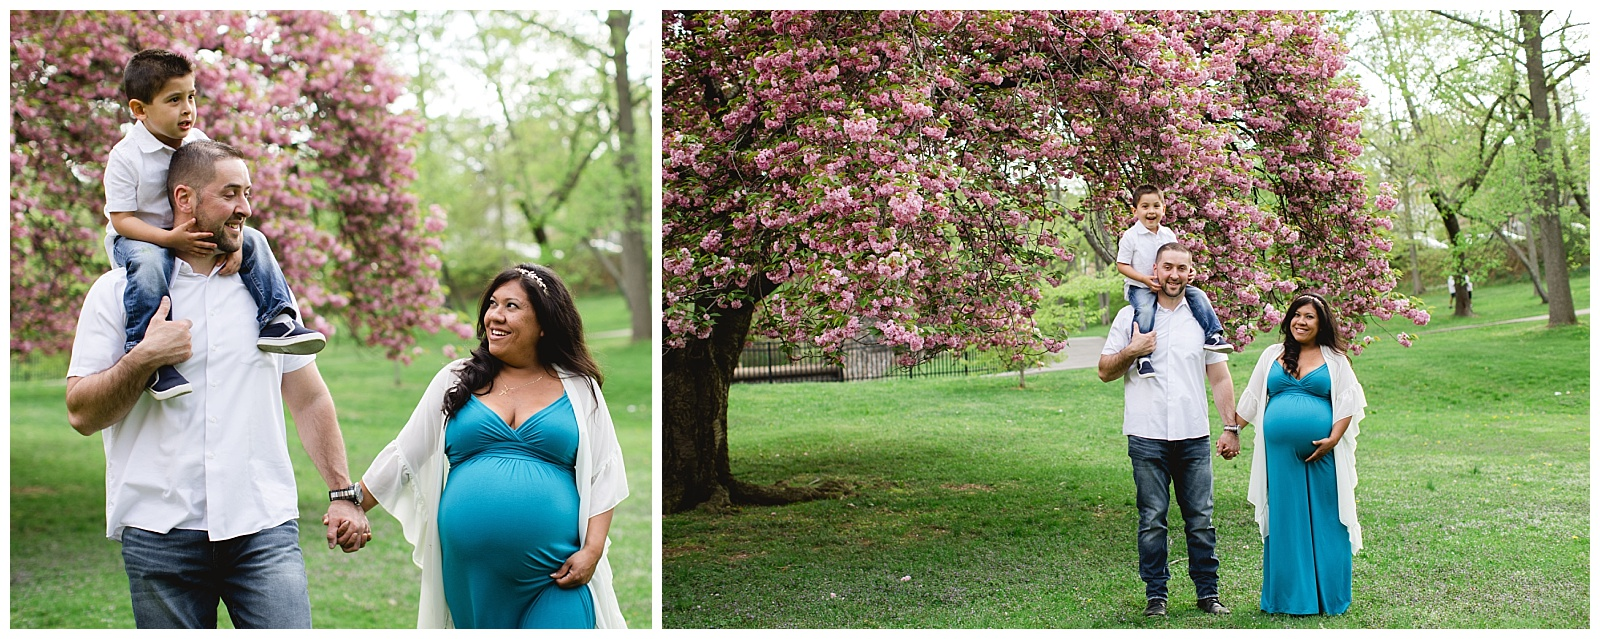 maternity photography bloomfield montclair roseland new jersey maternity photography new jersey newborn photography